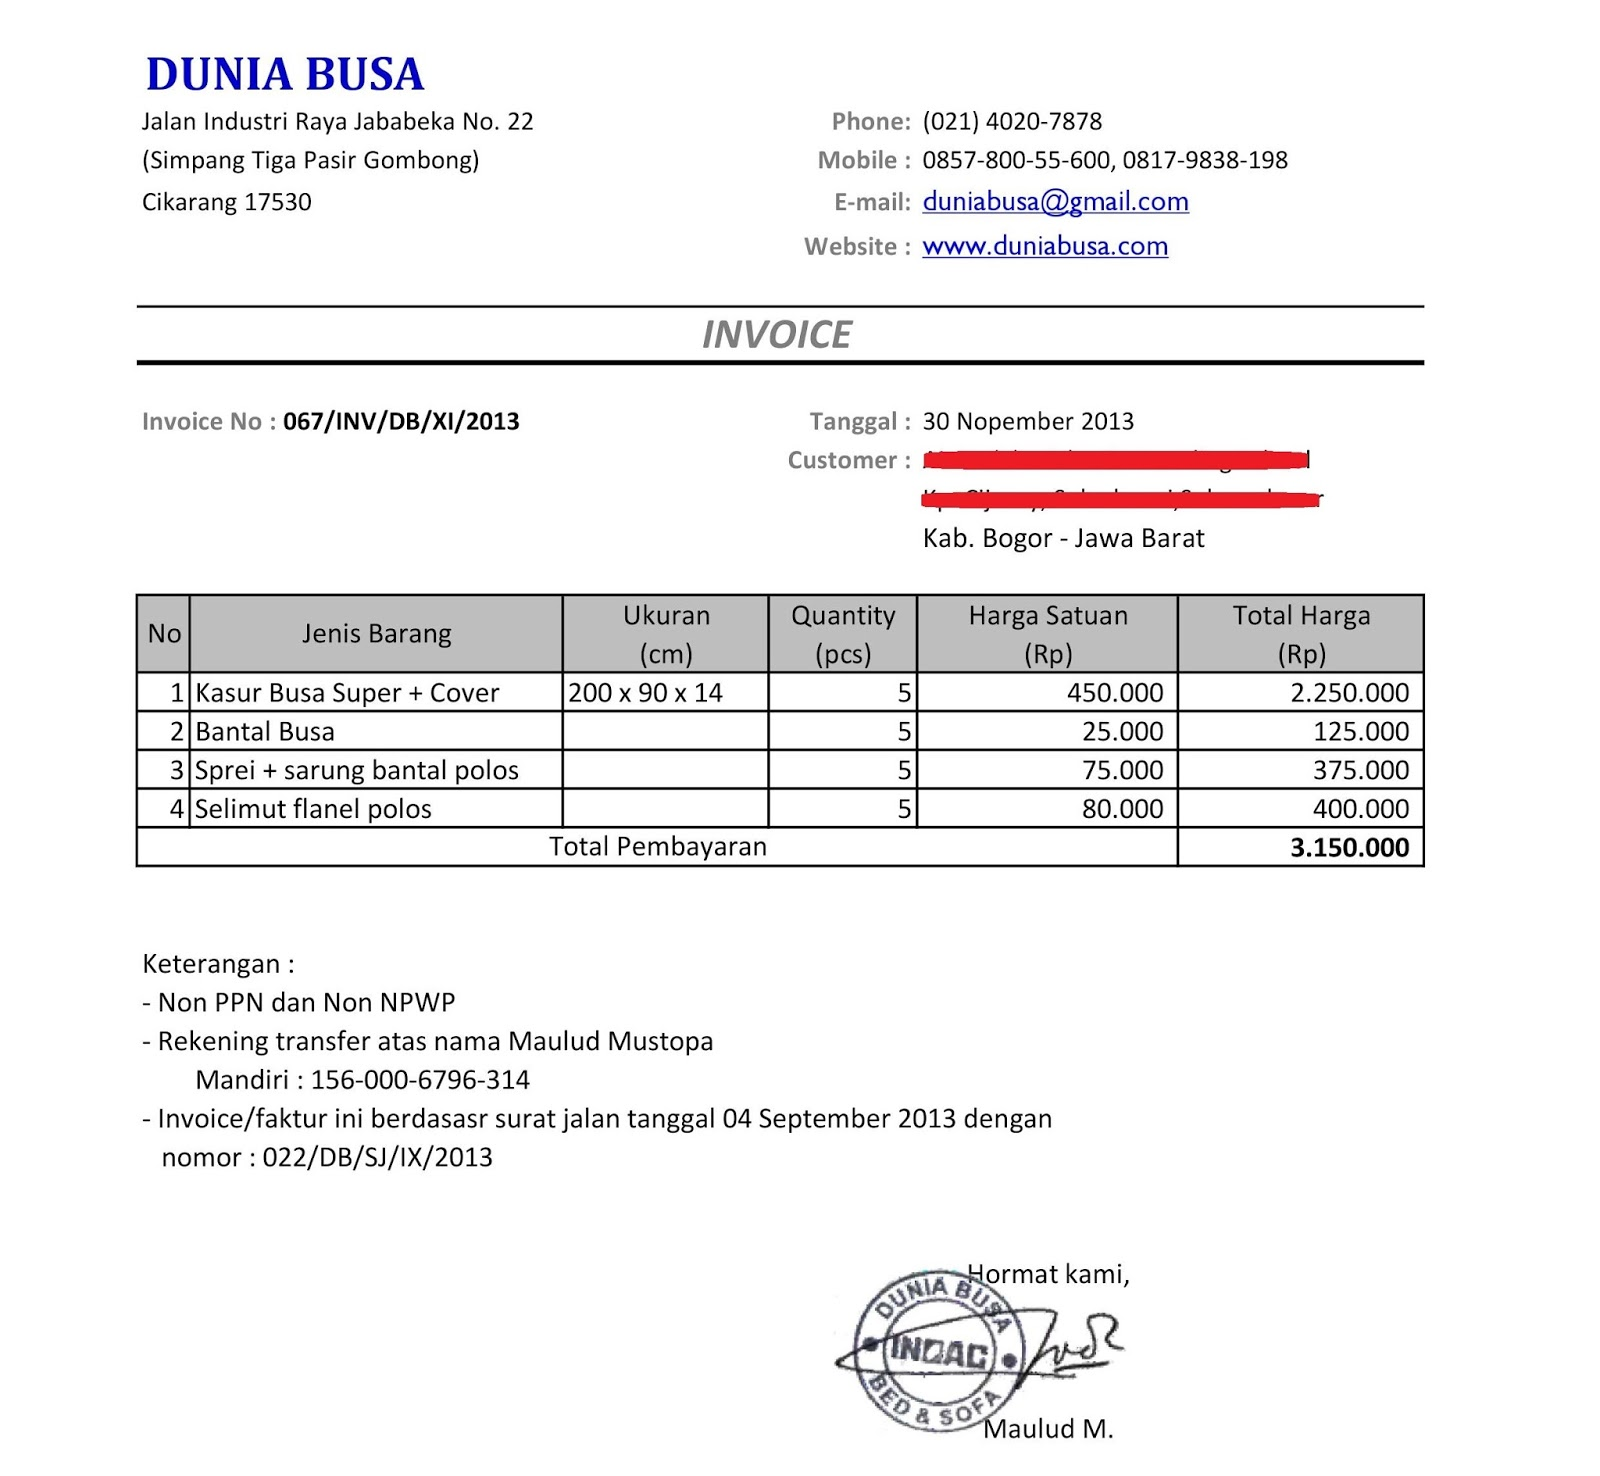 Aldiablosus  Unusual Free Invoice Online  Create Invoice Online  Invoice Template  With Magnificent Contoh Format Invoice Atau Surat Tagihan  Brankas Arsip  Free Invoice Online With Beauteous Free Invoices Also Adp Open Invoice In Addition Invoices Templates And Car Invoice Prices As Well As Invoice Meaning Additionally What Is Invoice From Sklepco With Aldiablosus  Magnificent Free Invoice Online  Create Invoice Online  Invoice Template  With Beauteous Contoh Format Invoice Atau Surat Tagihan  Brankas Arsip  Free Invoice Online And Unusual Free Invoices Also Adp Open Invoice In Addition Invoices Templates From Sklepco